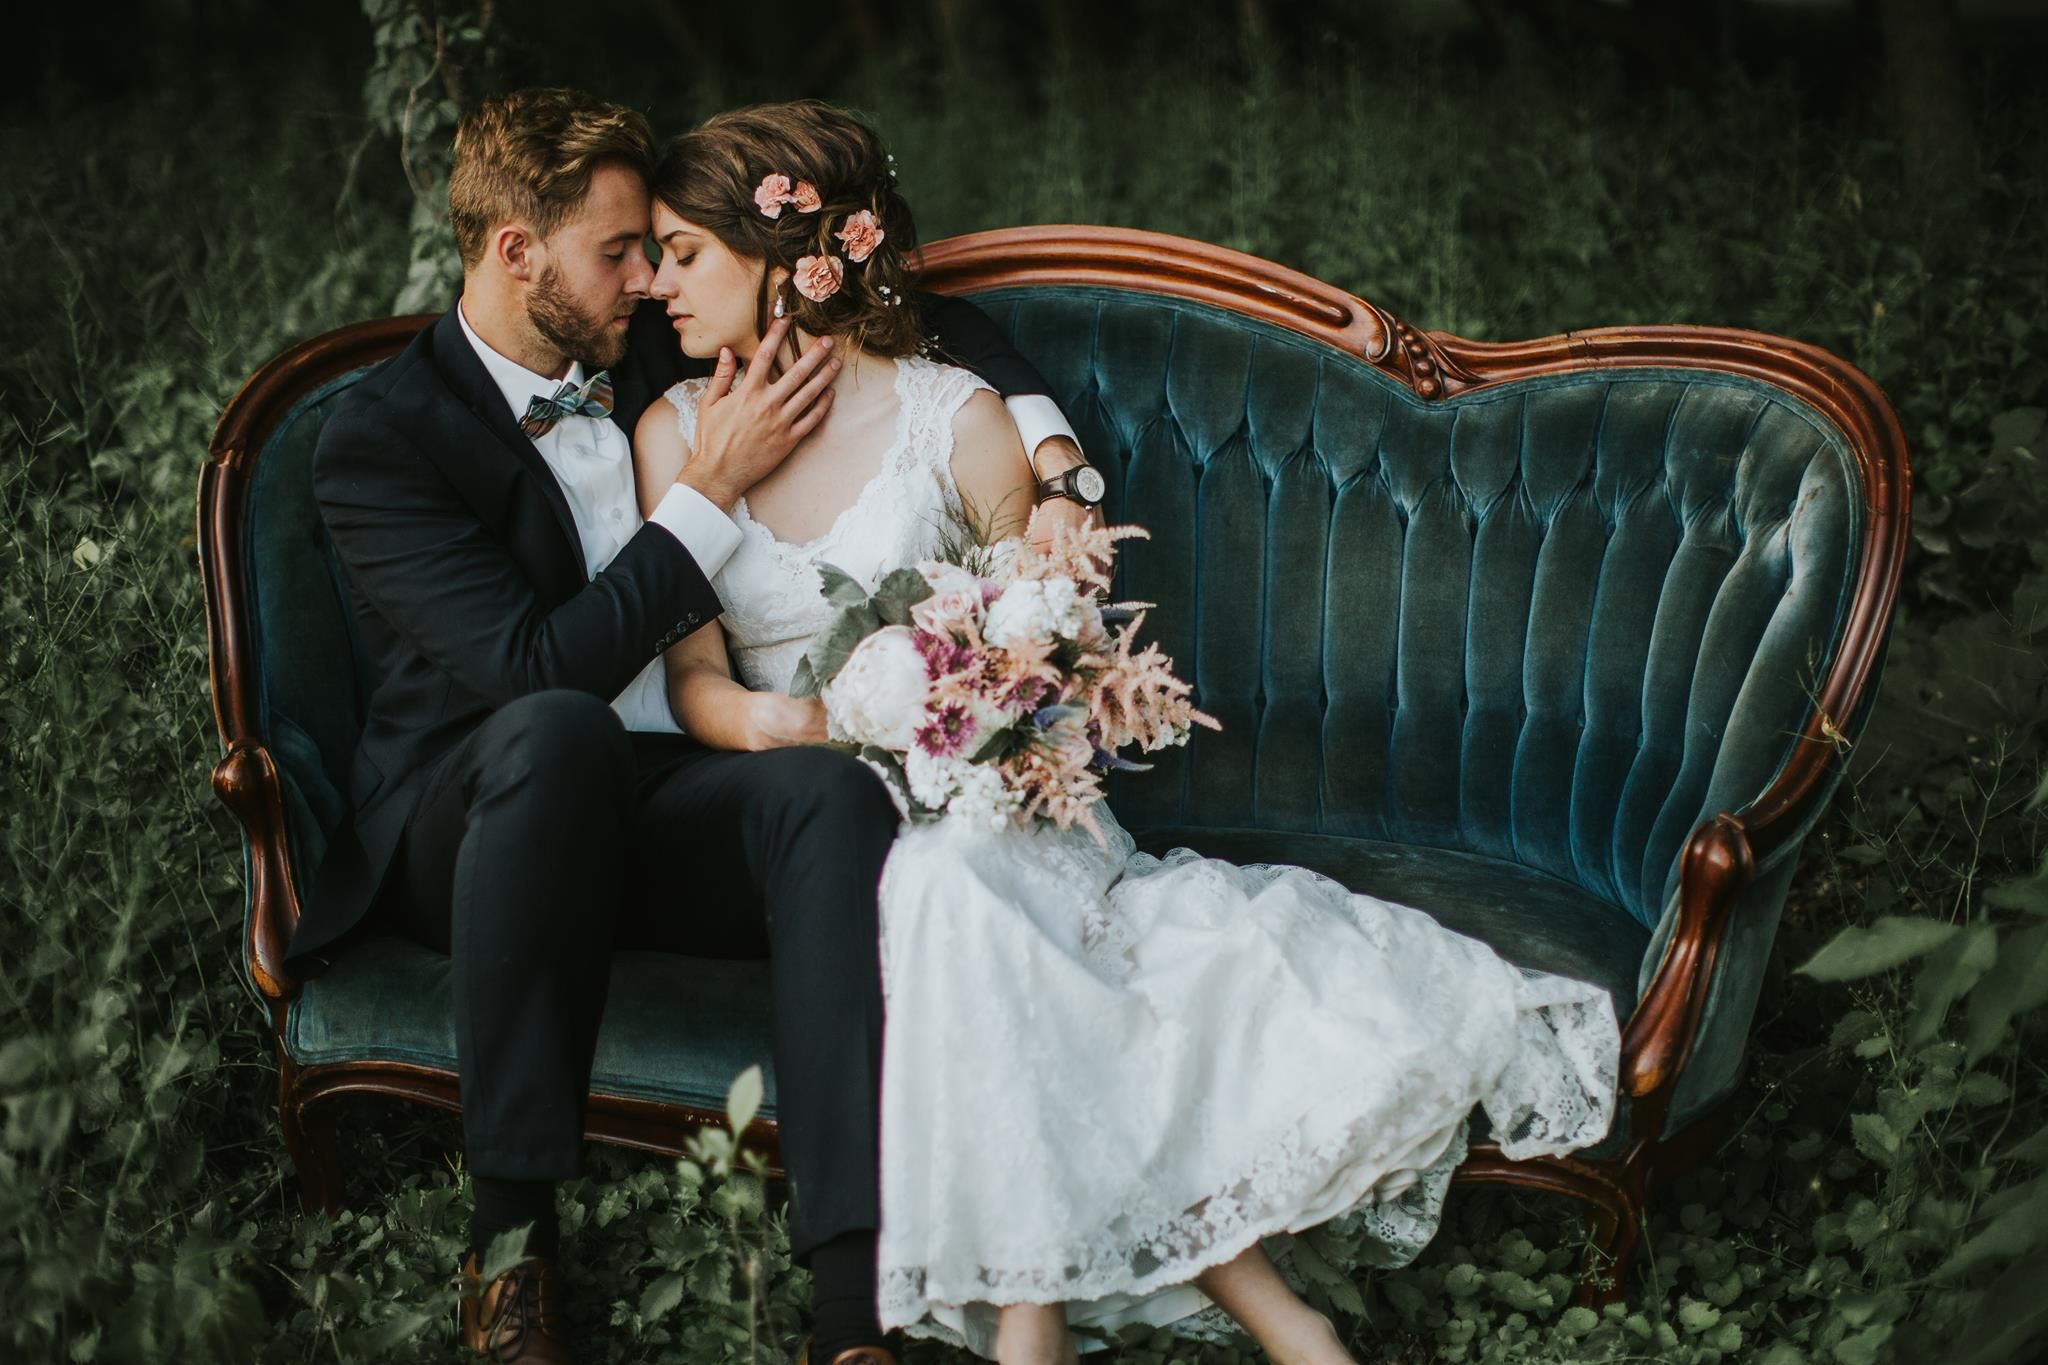 Because Whenever Was A Vintage Sofa In A Forest Ever A Bad Idea Vintage Wedding Romantic Wedding Photography Poses Wedding Poses